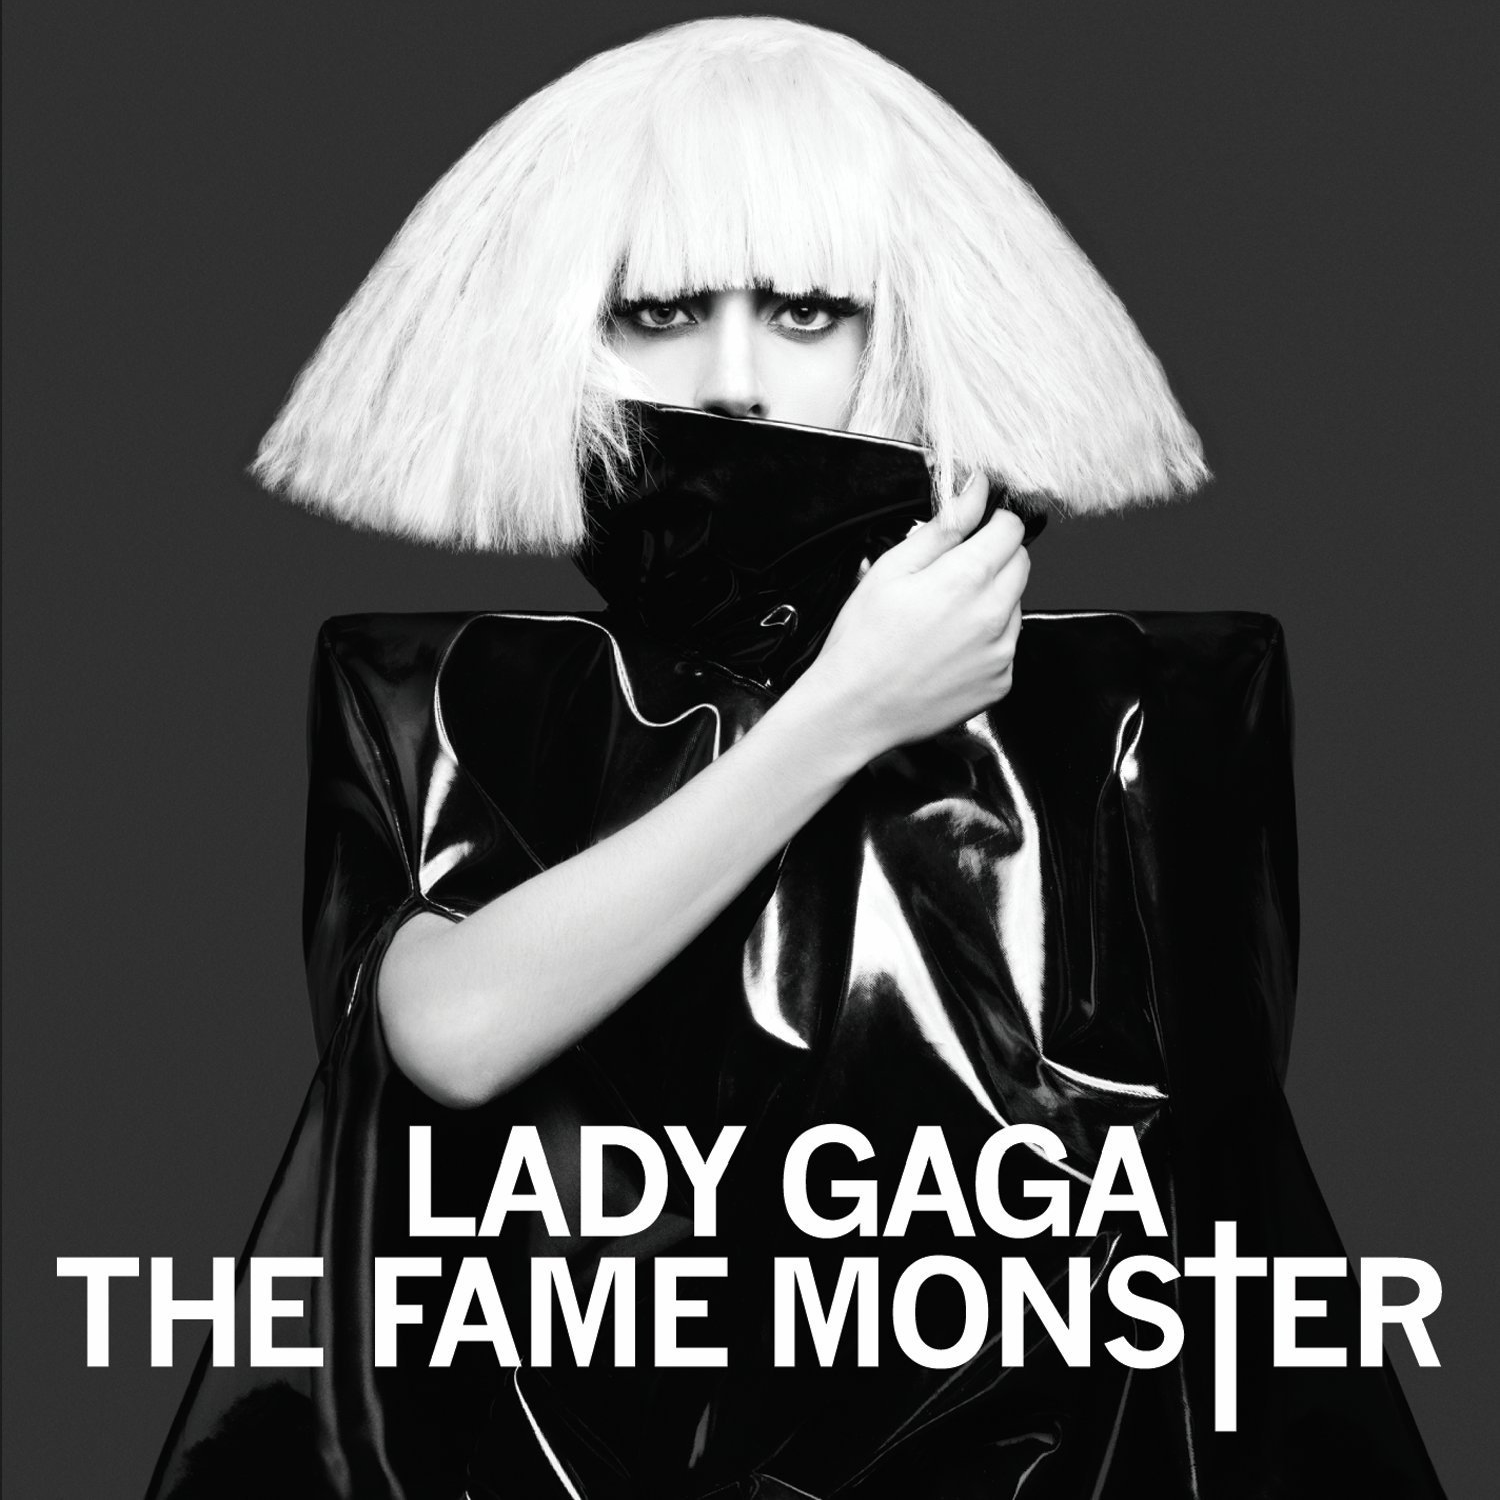 lady_gaga__the_fame_monster_by_boykatyca